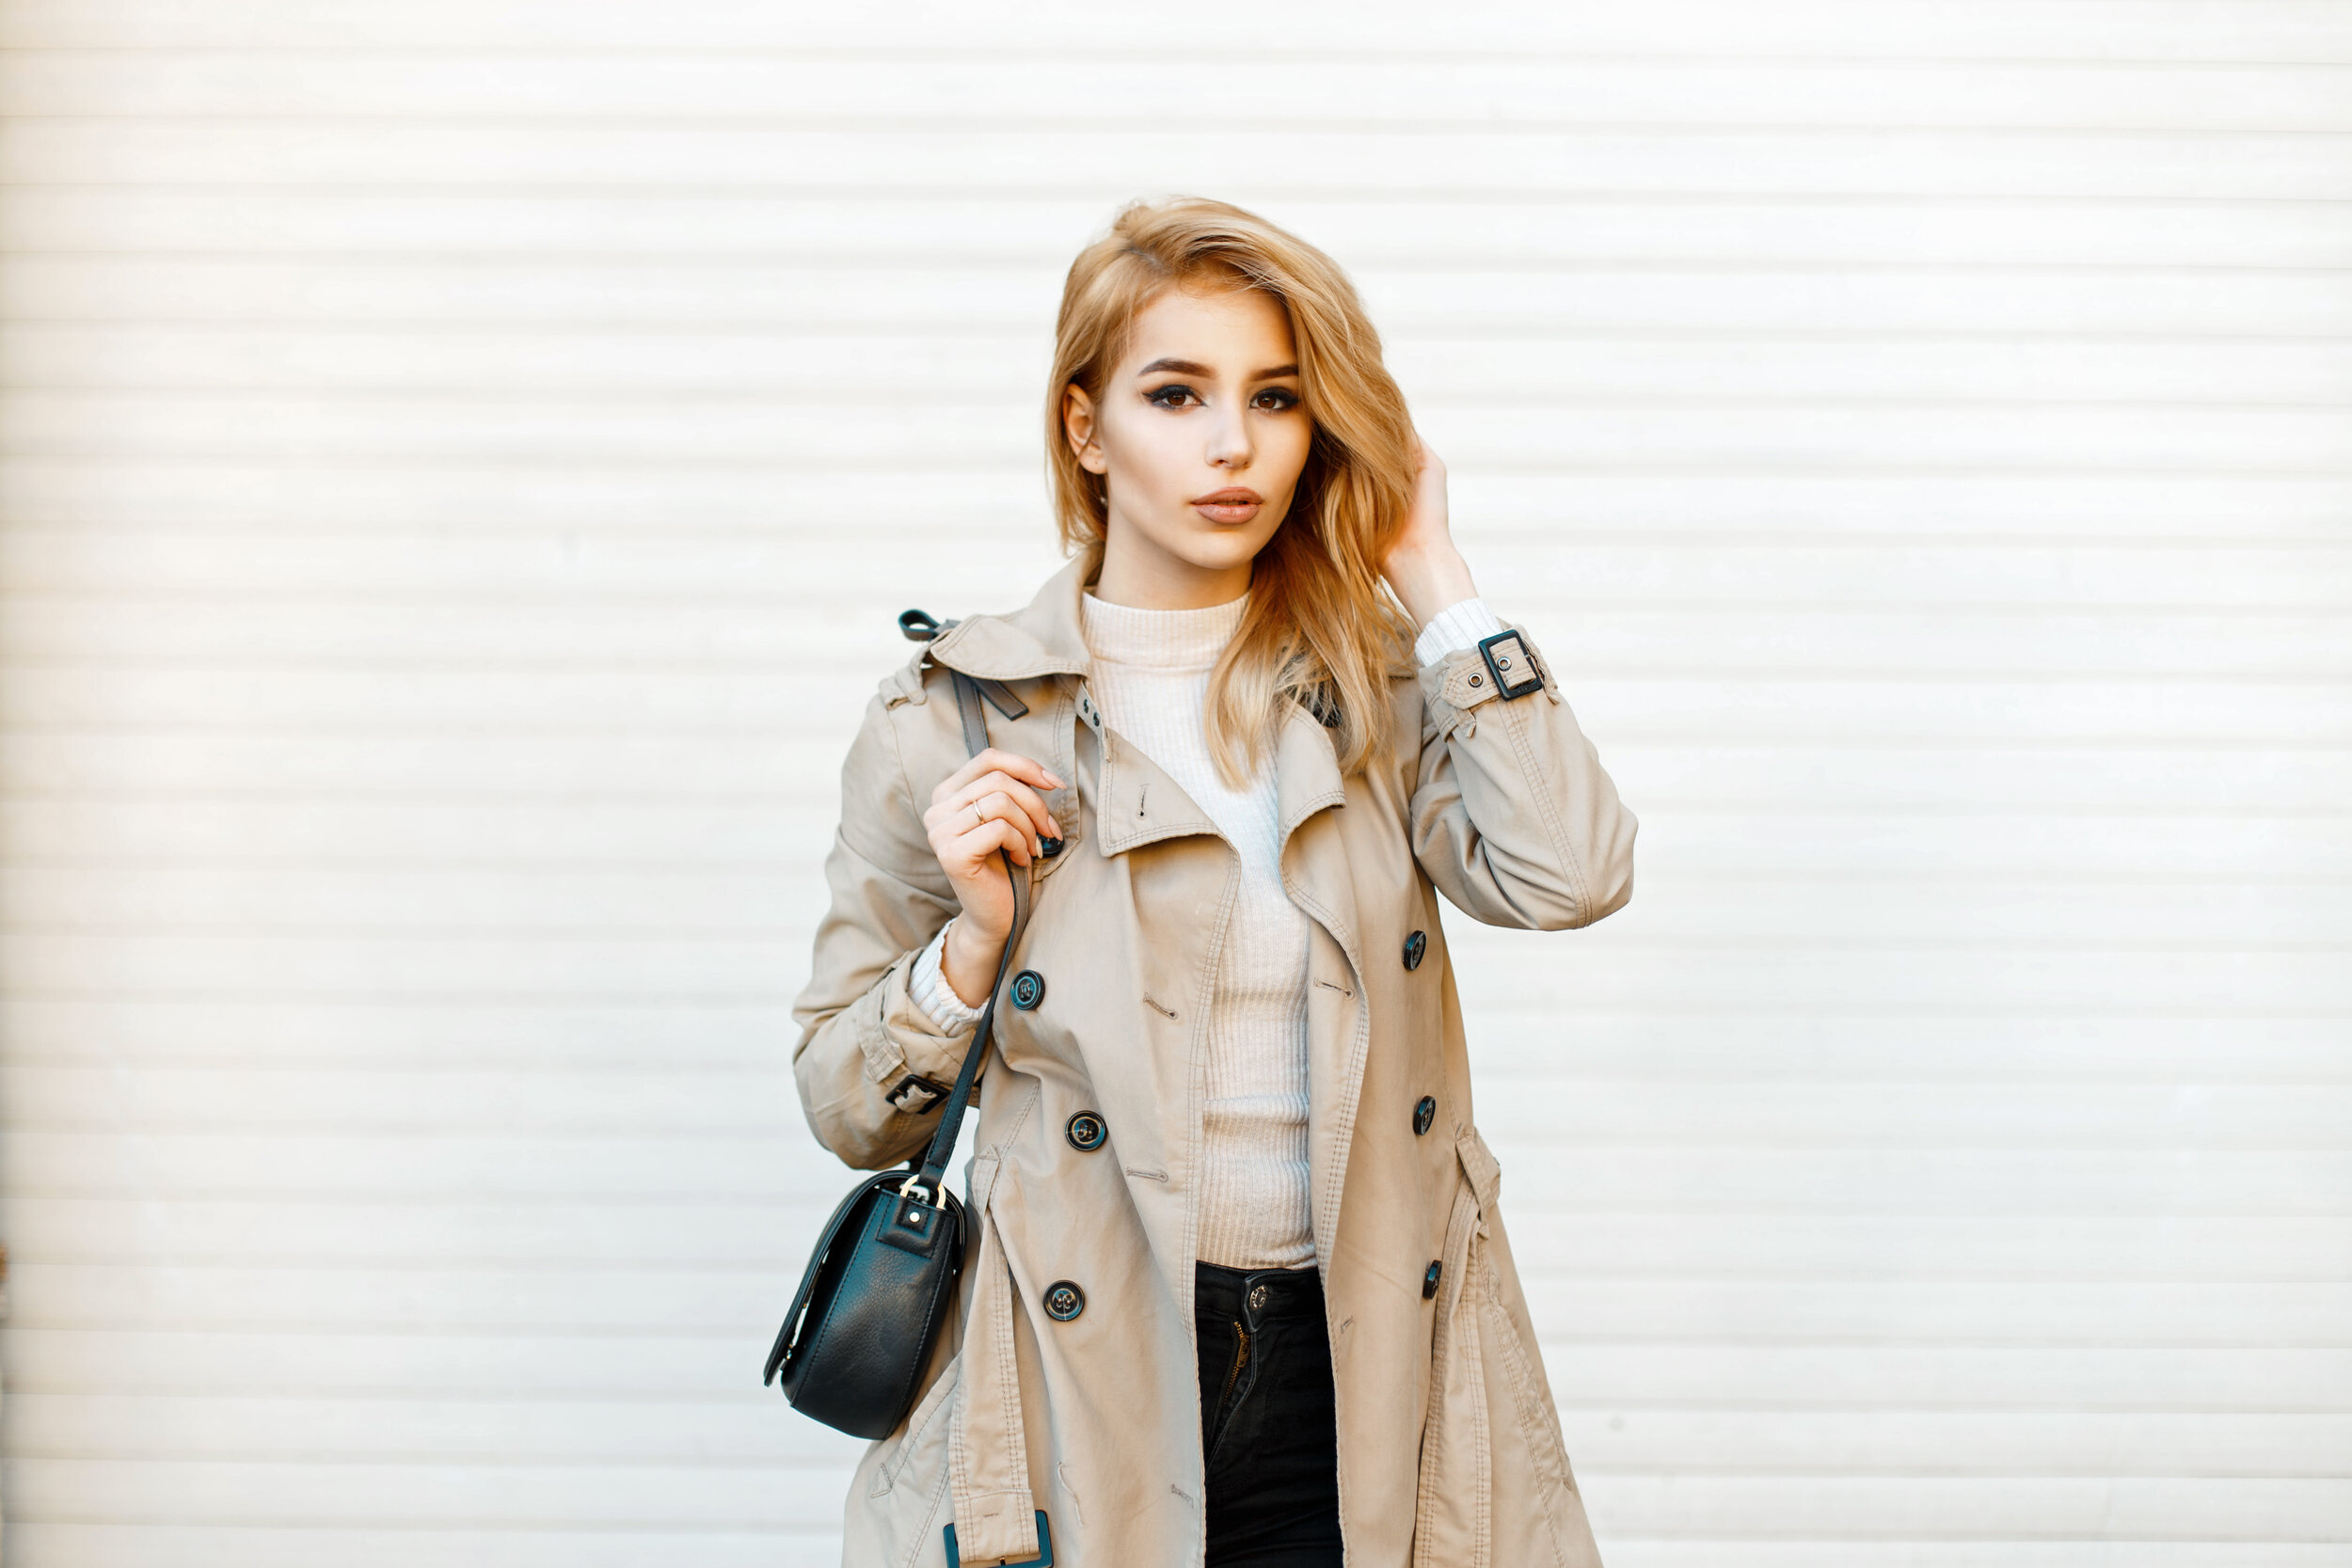 Young woman in trendy coat with handbag near white wall